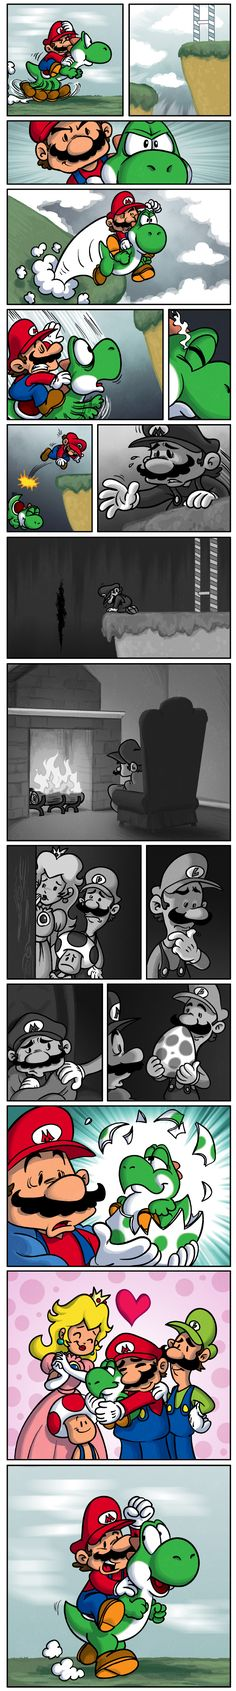 A Yoshi Story: How Mario Deals with Yoshi's Death http://geekxgirls.com/article.php?ID=2260